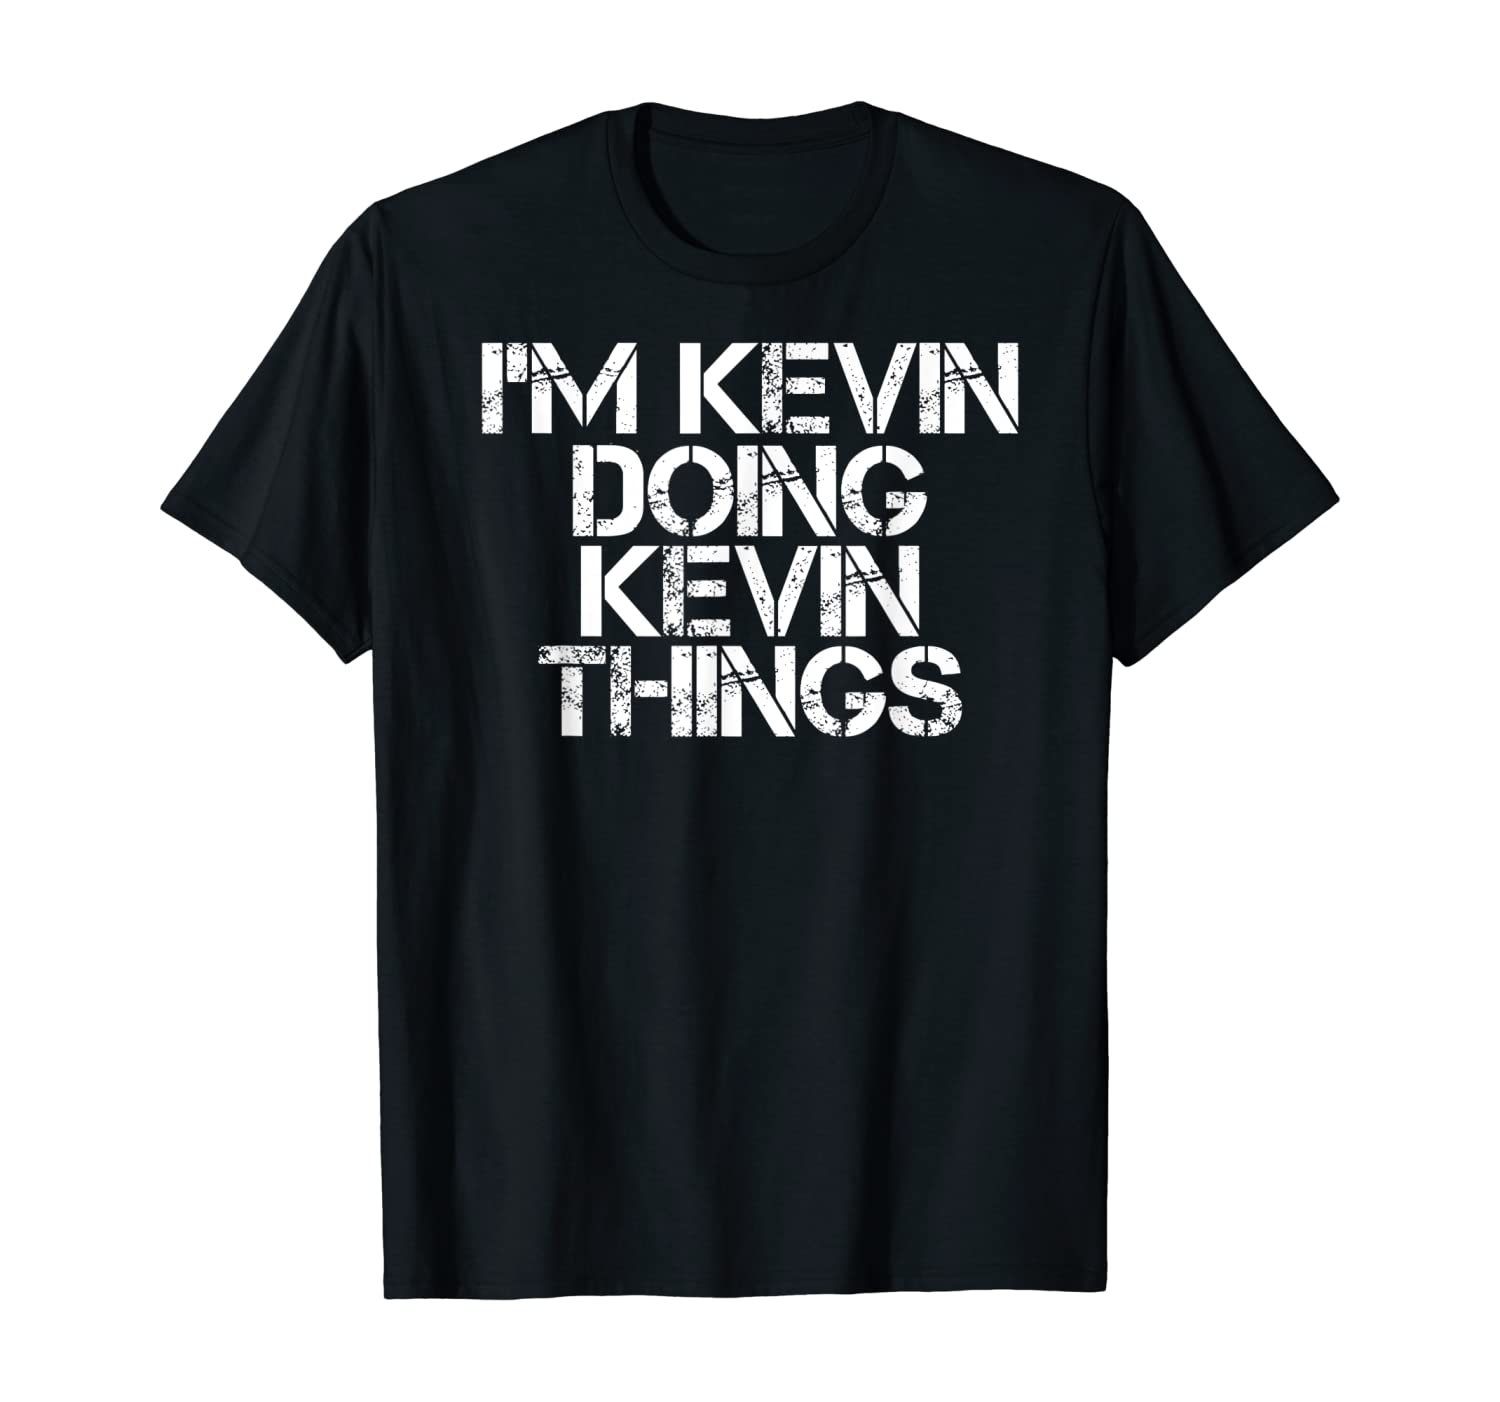 I'M KEVIN DOING KEVIN THINGS Shirt Funny Christmas Gift Idea T-Shirt